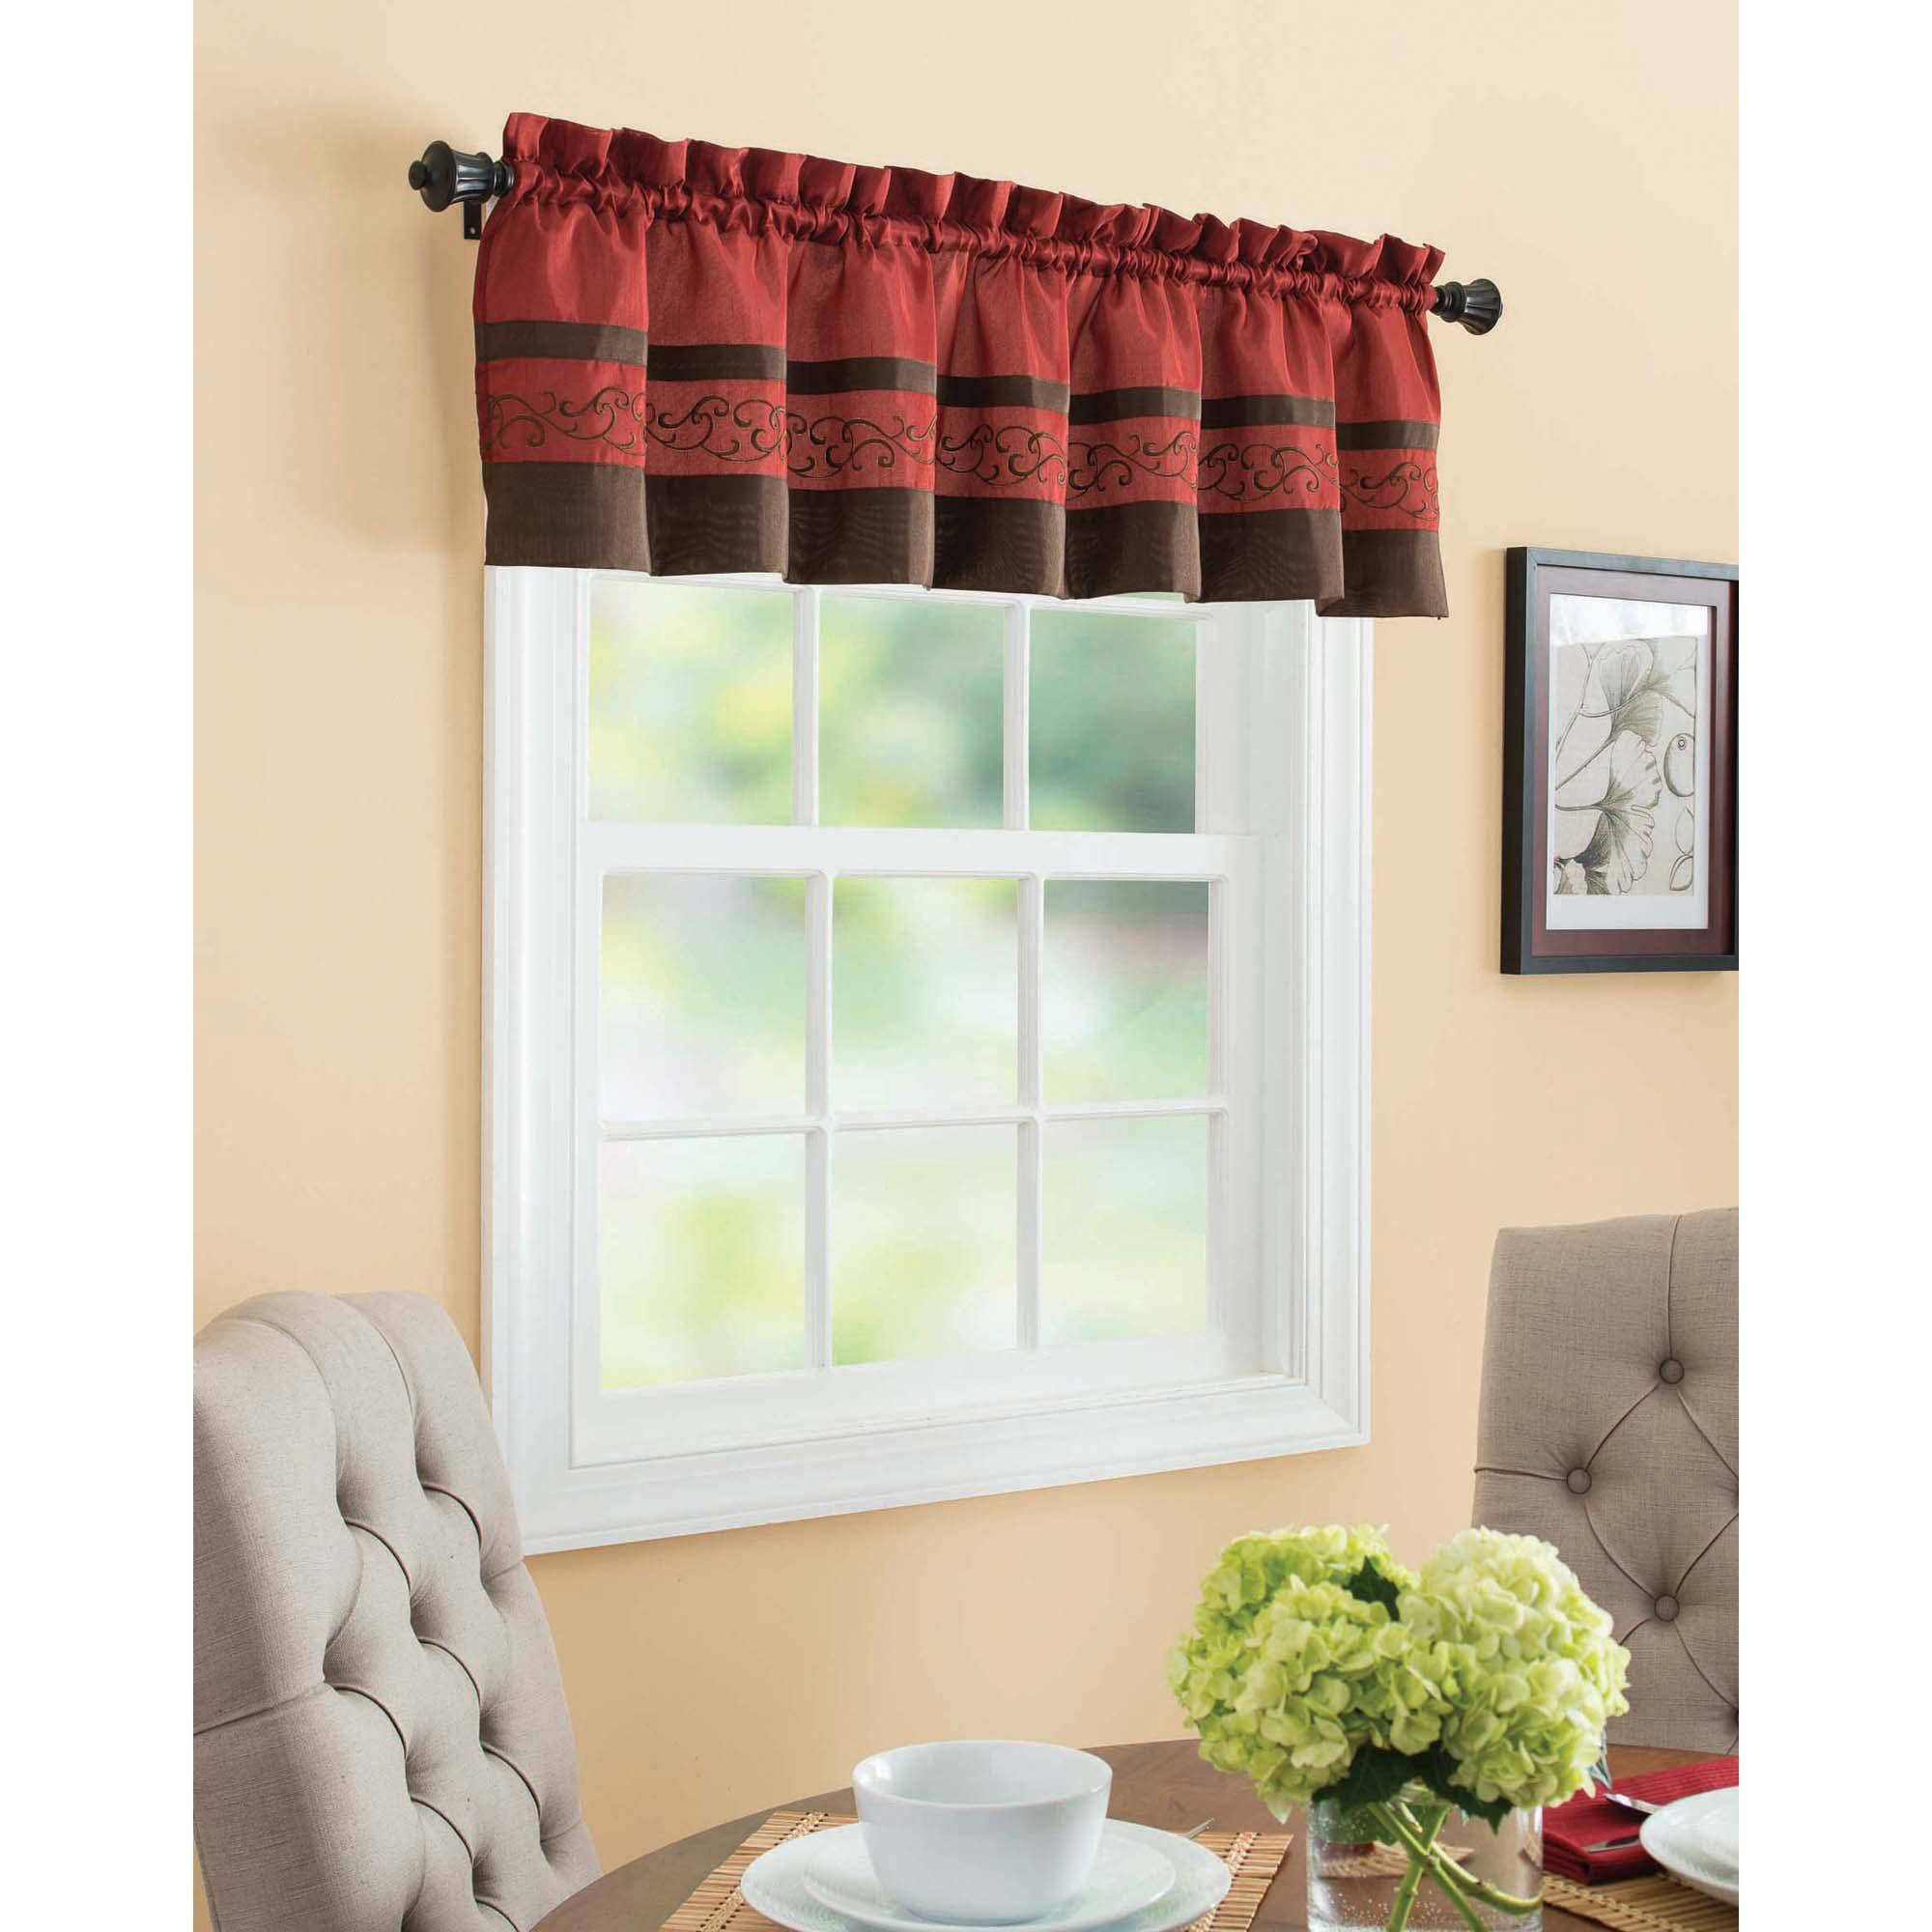 Better Homes and Gardens Elizabeth Valance or Kitchen Tiers